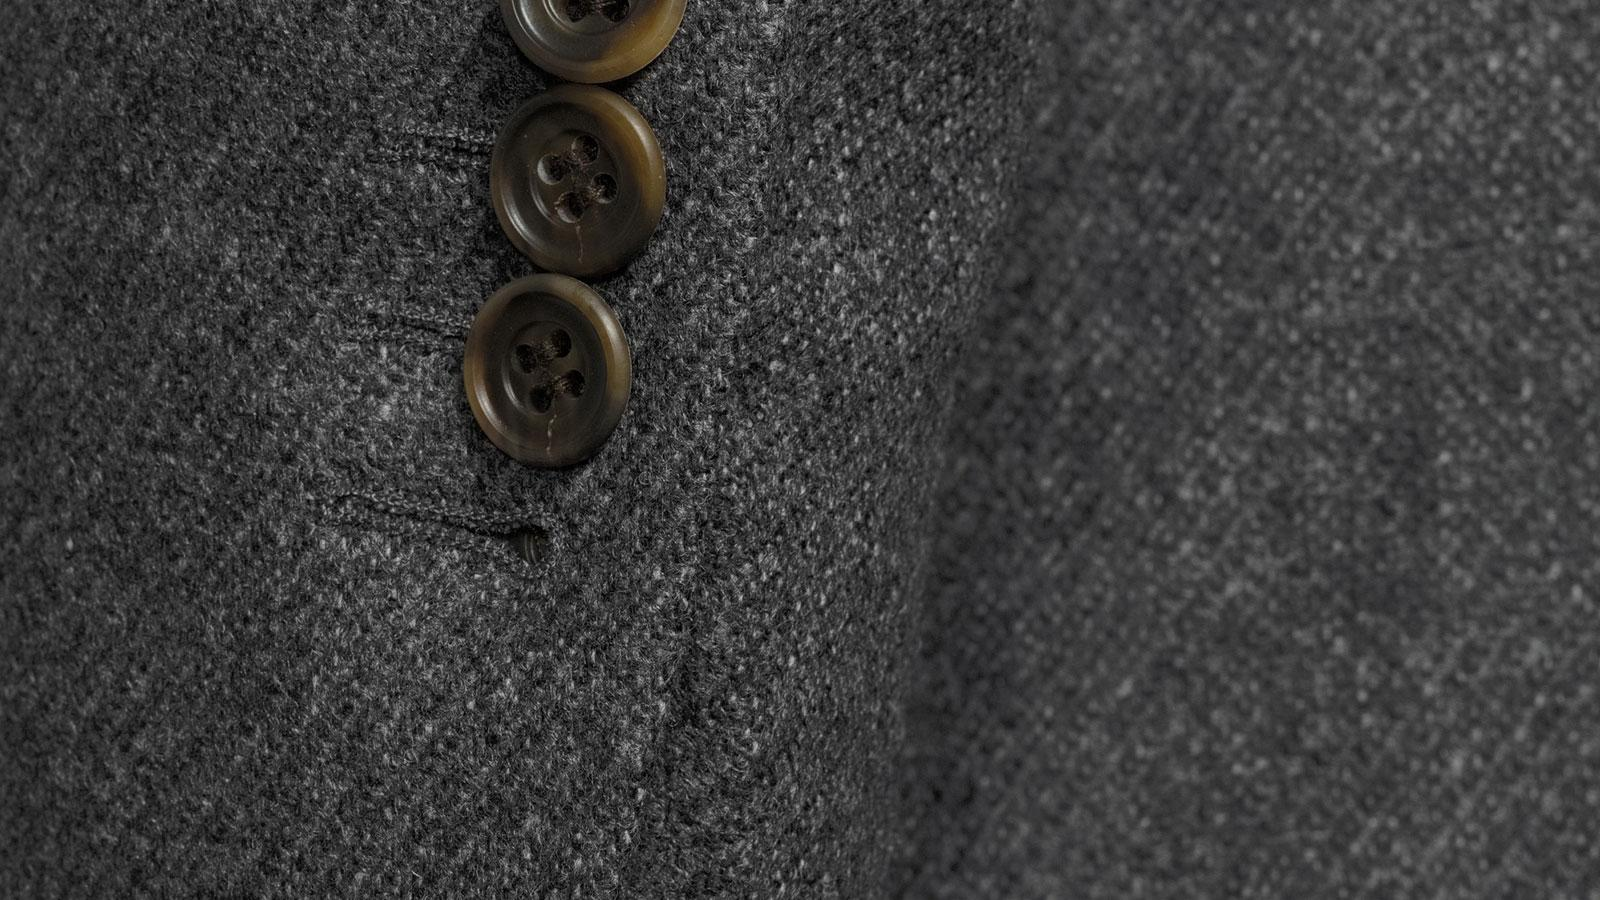 Grey Twill Wool & Cashmere suit - slider image 1